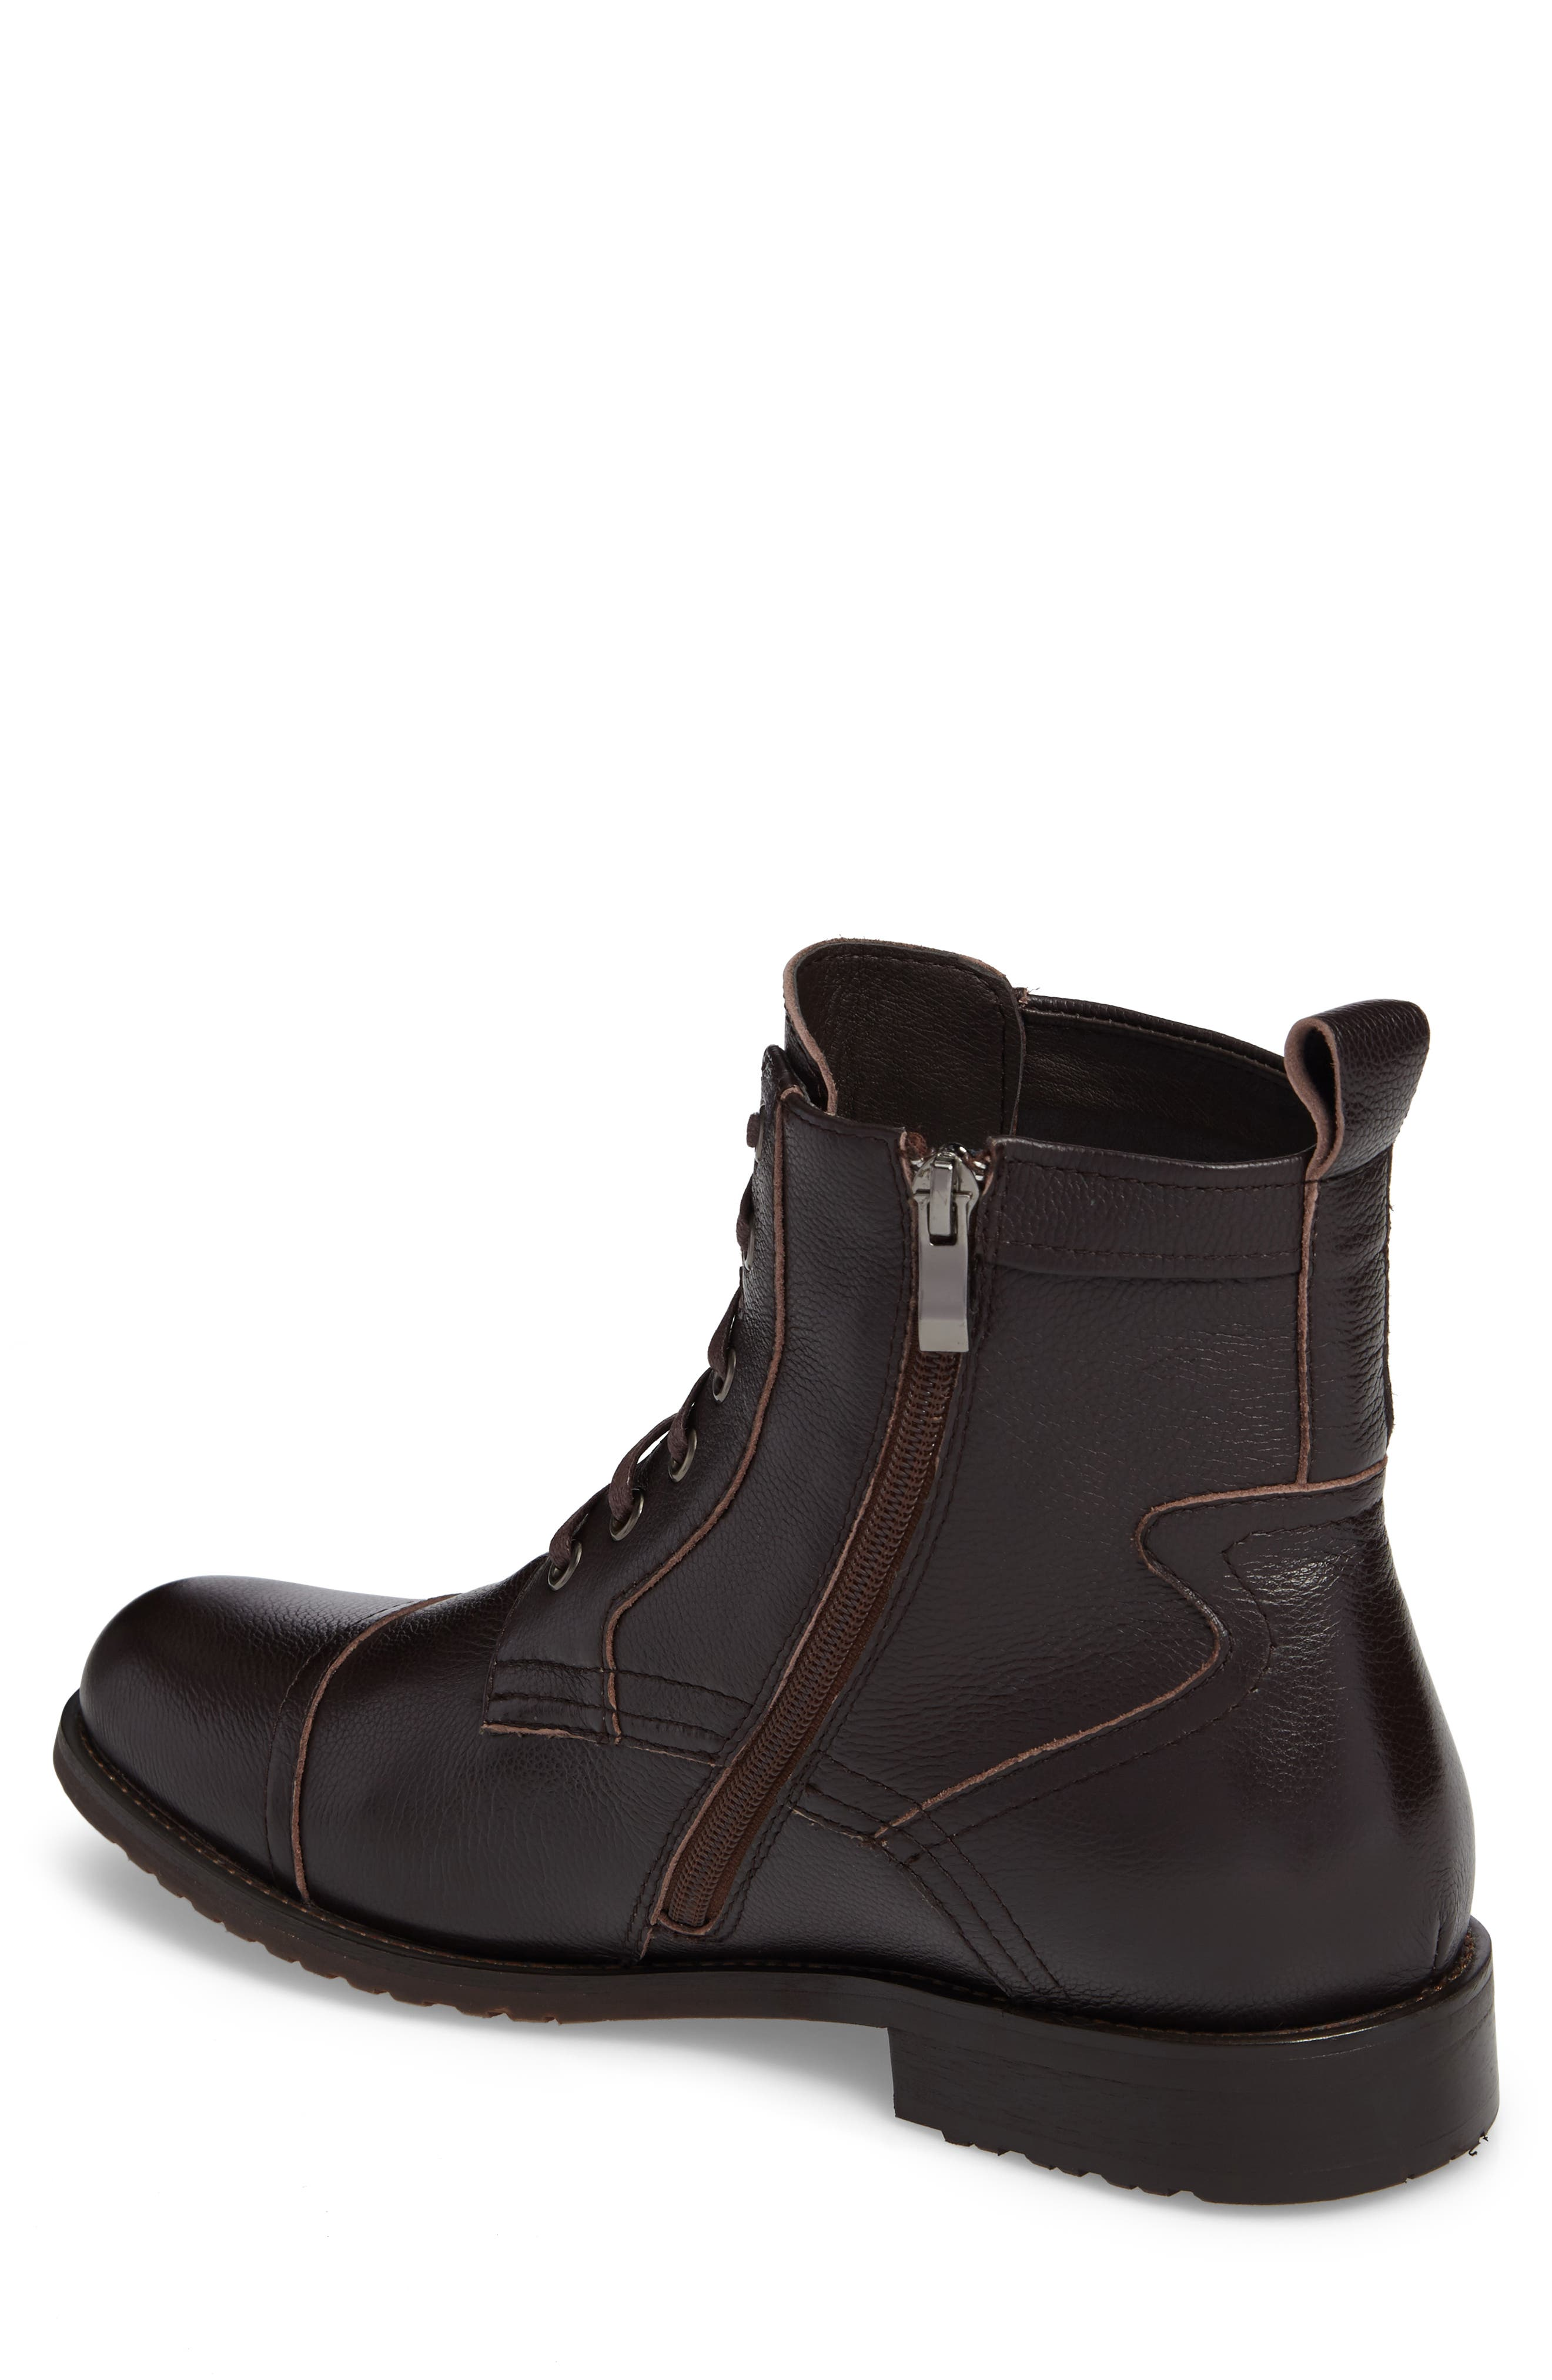 Cap Toe Boot,                             Alternate thumbnail 2, color,                             Brown Leather